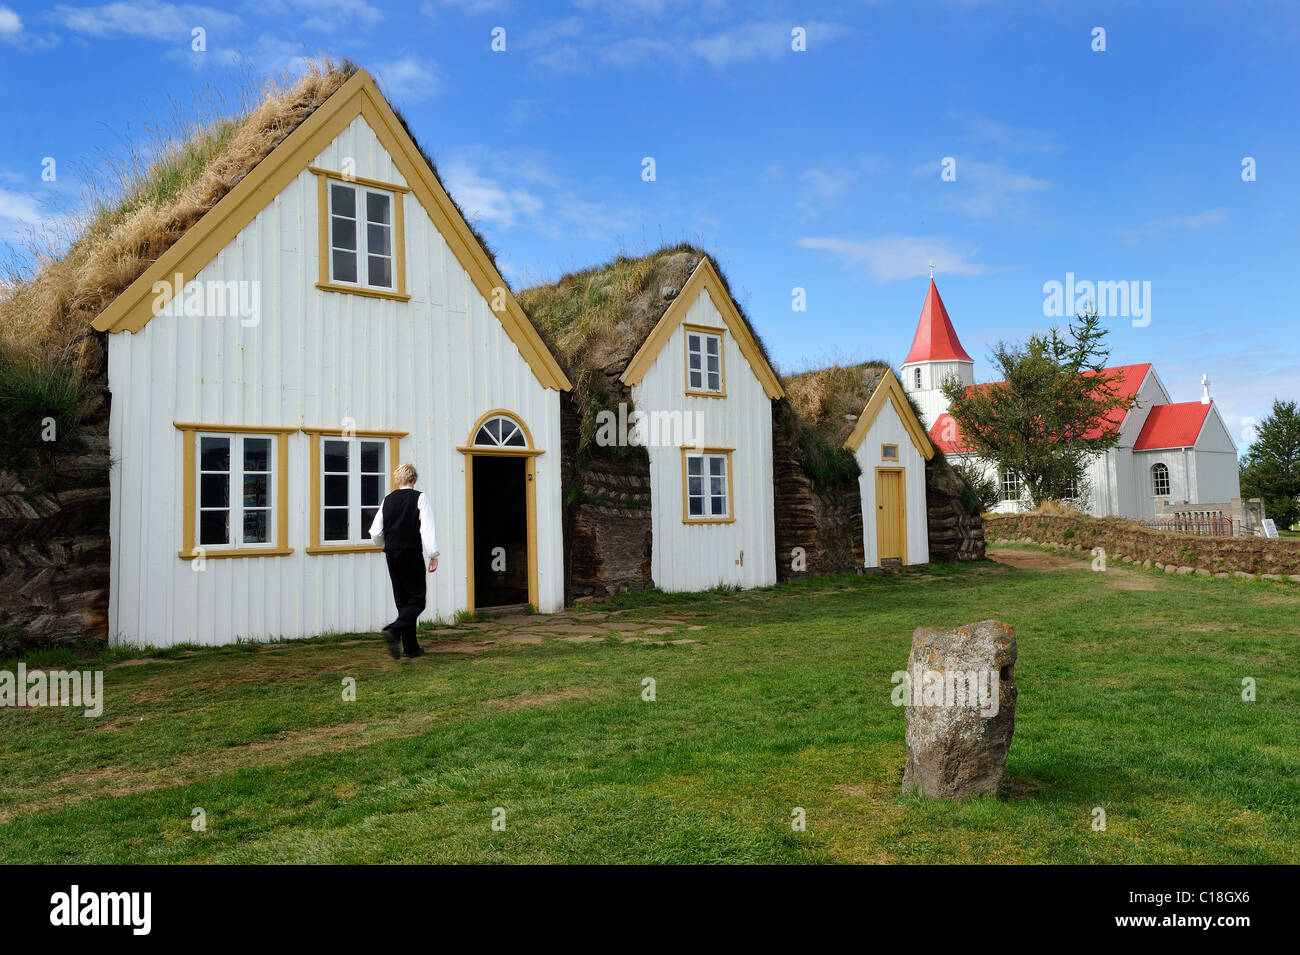 Museum courtyard Glaumbaer, open-air museum, sod yard, turf walls, grass roofs, wood facade, Iceland, Europe - Stock Image